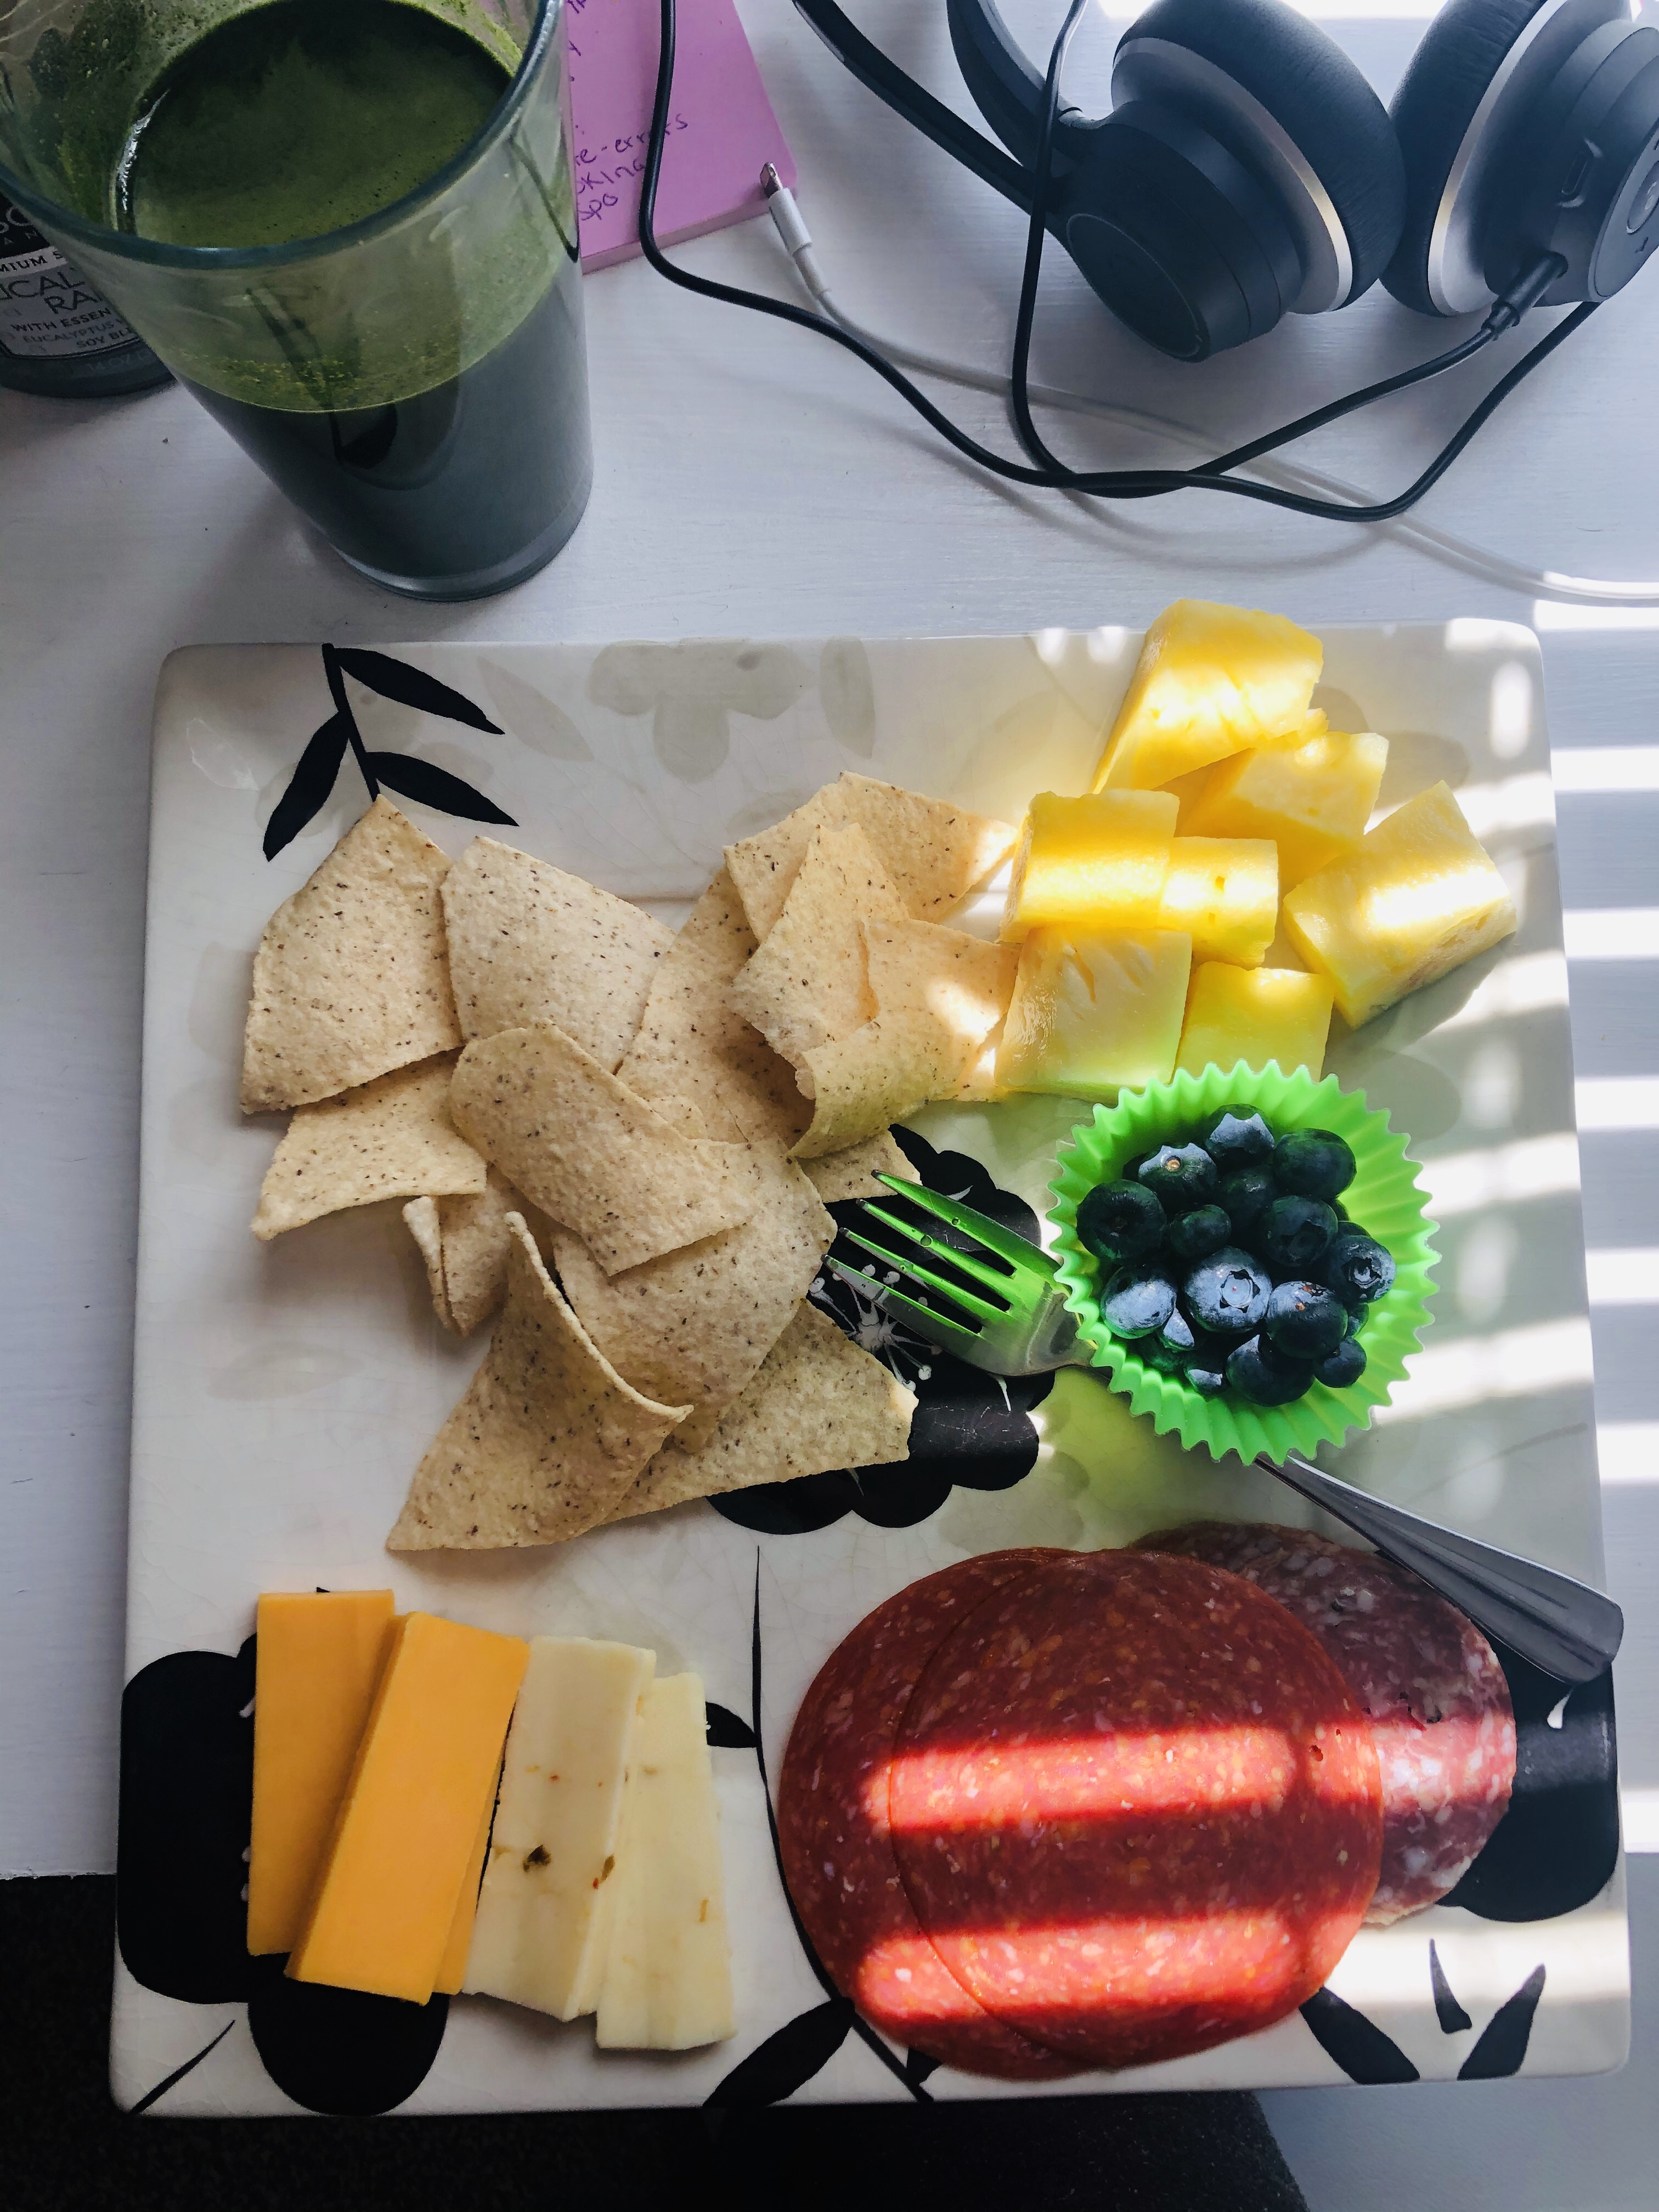 Chips, fruit, cheese, pepperoni